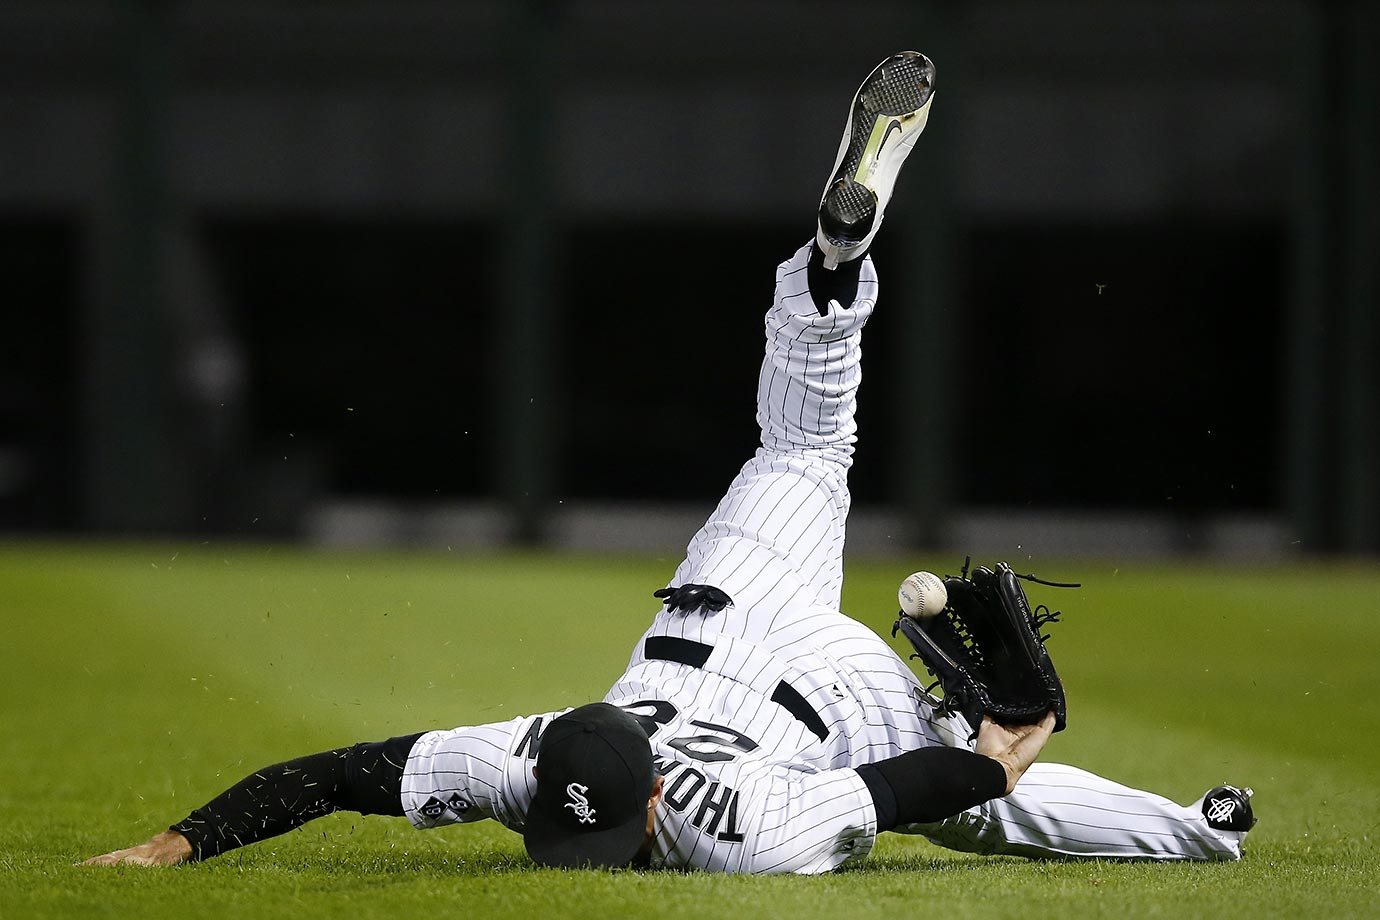 Charles McQuillan of the Chicago White Sox loses the ball on a double hit by Brett Lawrie of the A's.